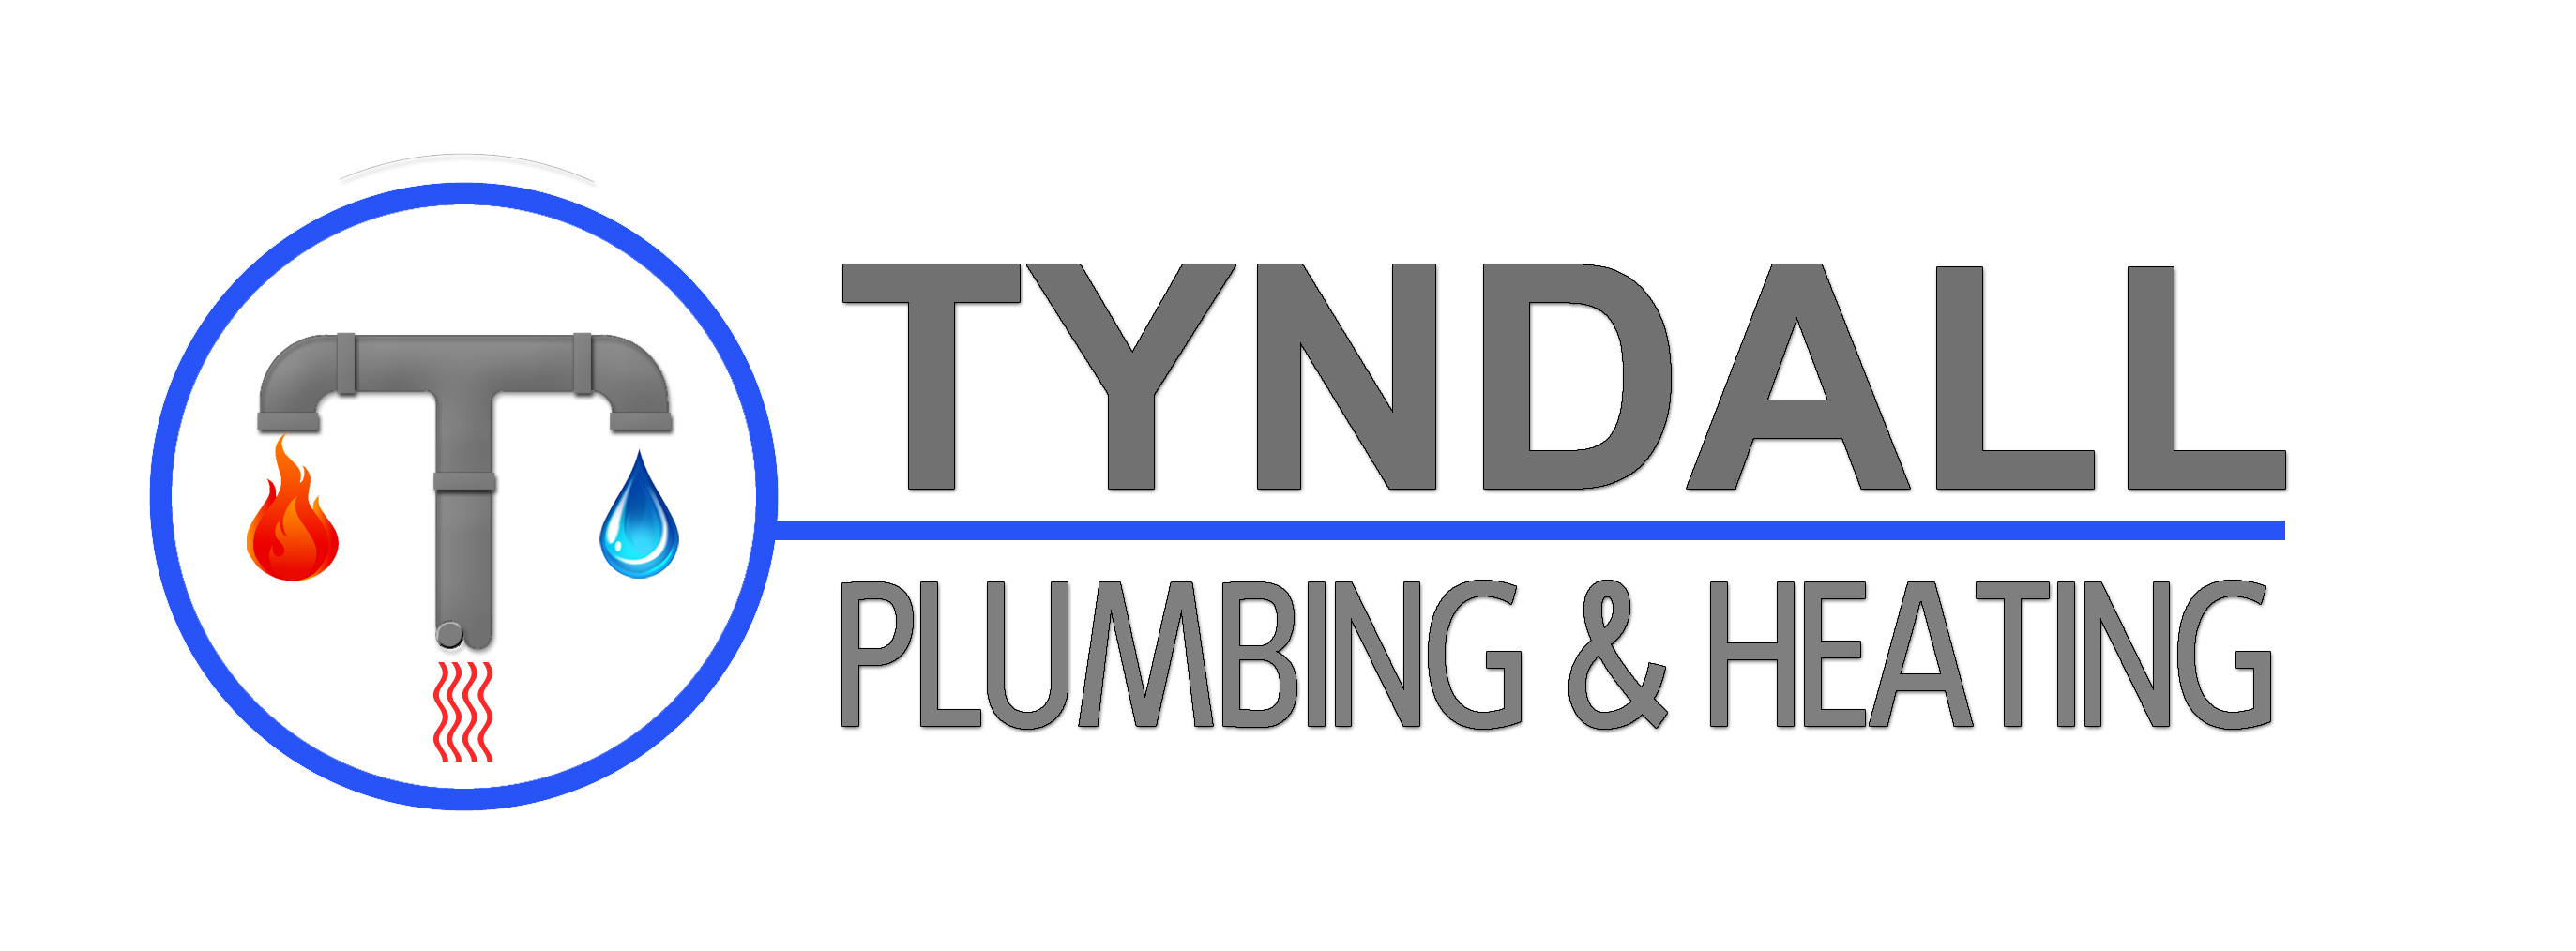 Logo Design by JSDESIGNGROUP - Entry No. 135 in the Logo Design Contest Imaginative Logo Design for Tyndall Plumbing & Heating.